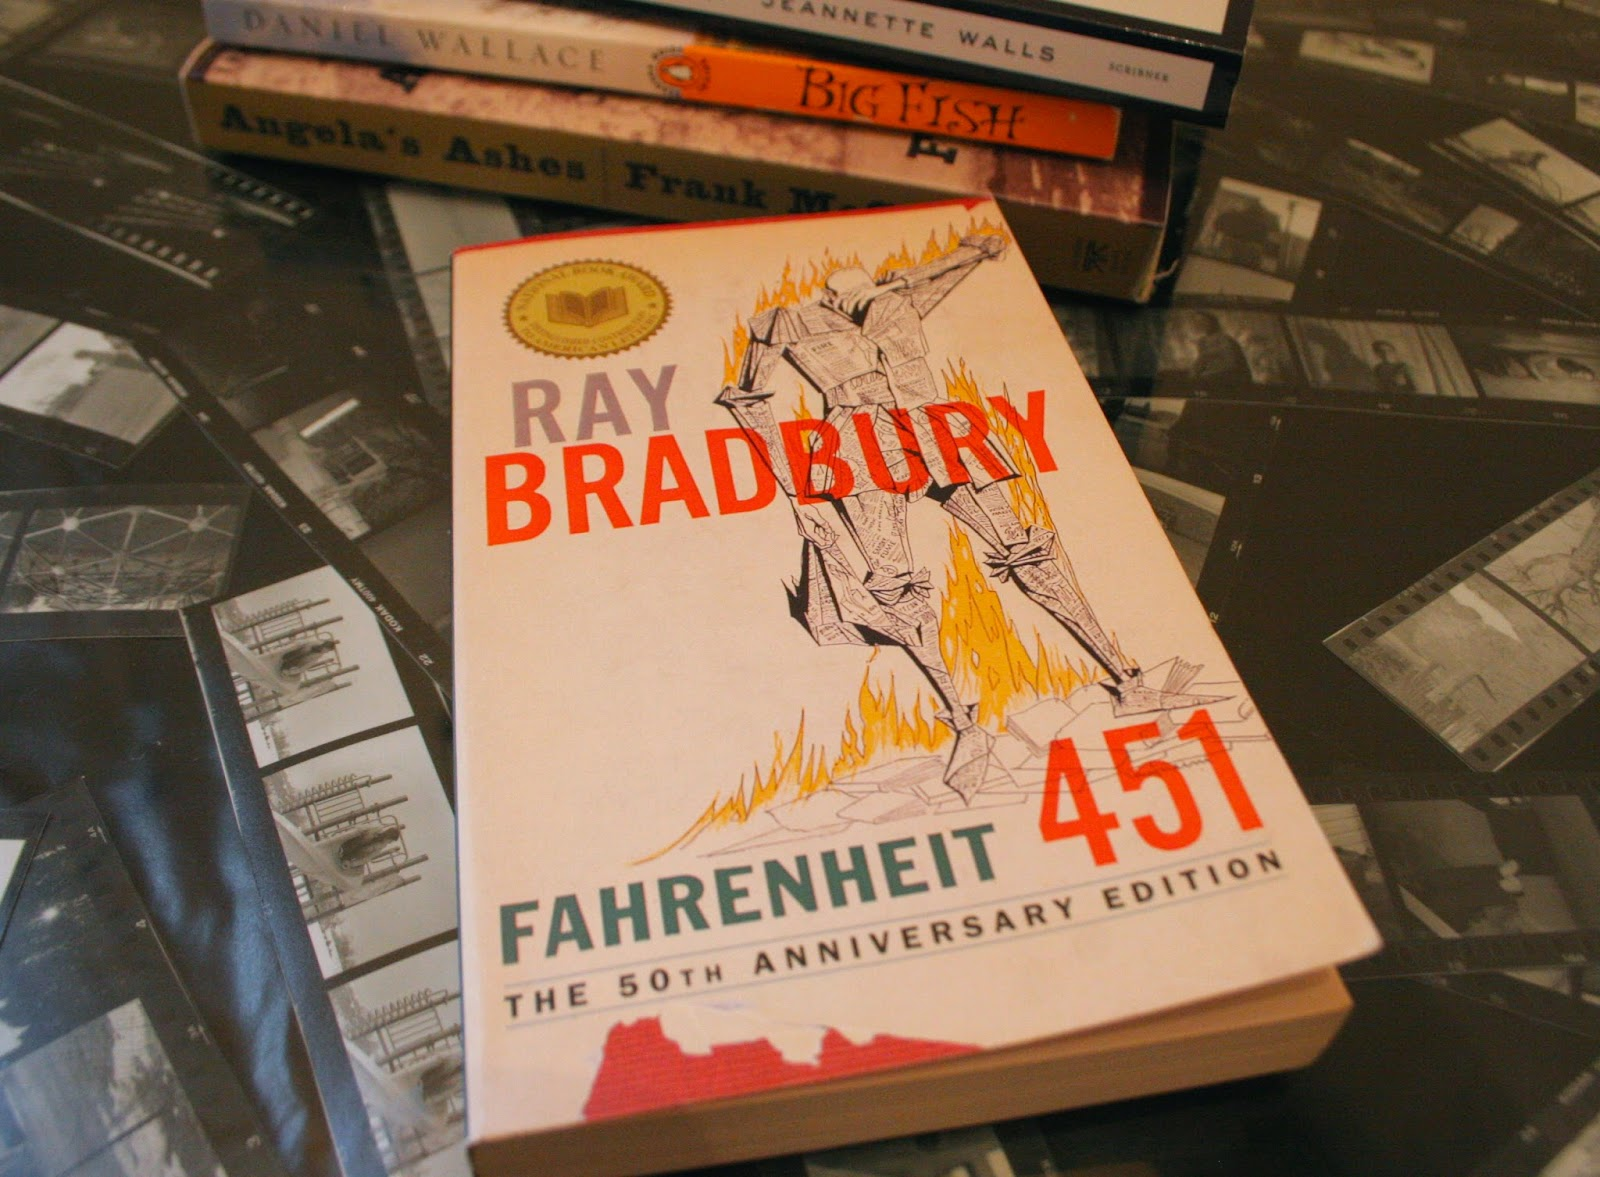 guy montag anaylis essay Chapter 6—reproduclble 1 character analysis model essay the evolution of guy montag can one person alter the course of history in the novel fahrenheit 451 by ray bradbury, guy montag's.